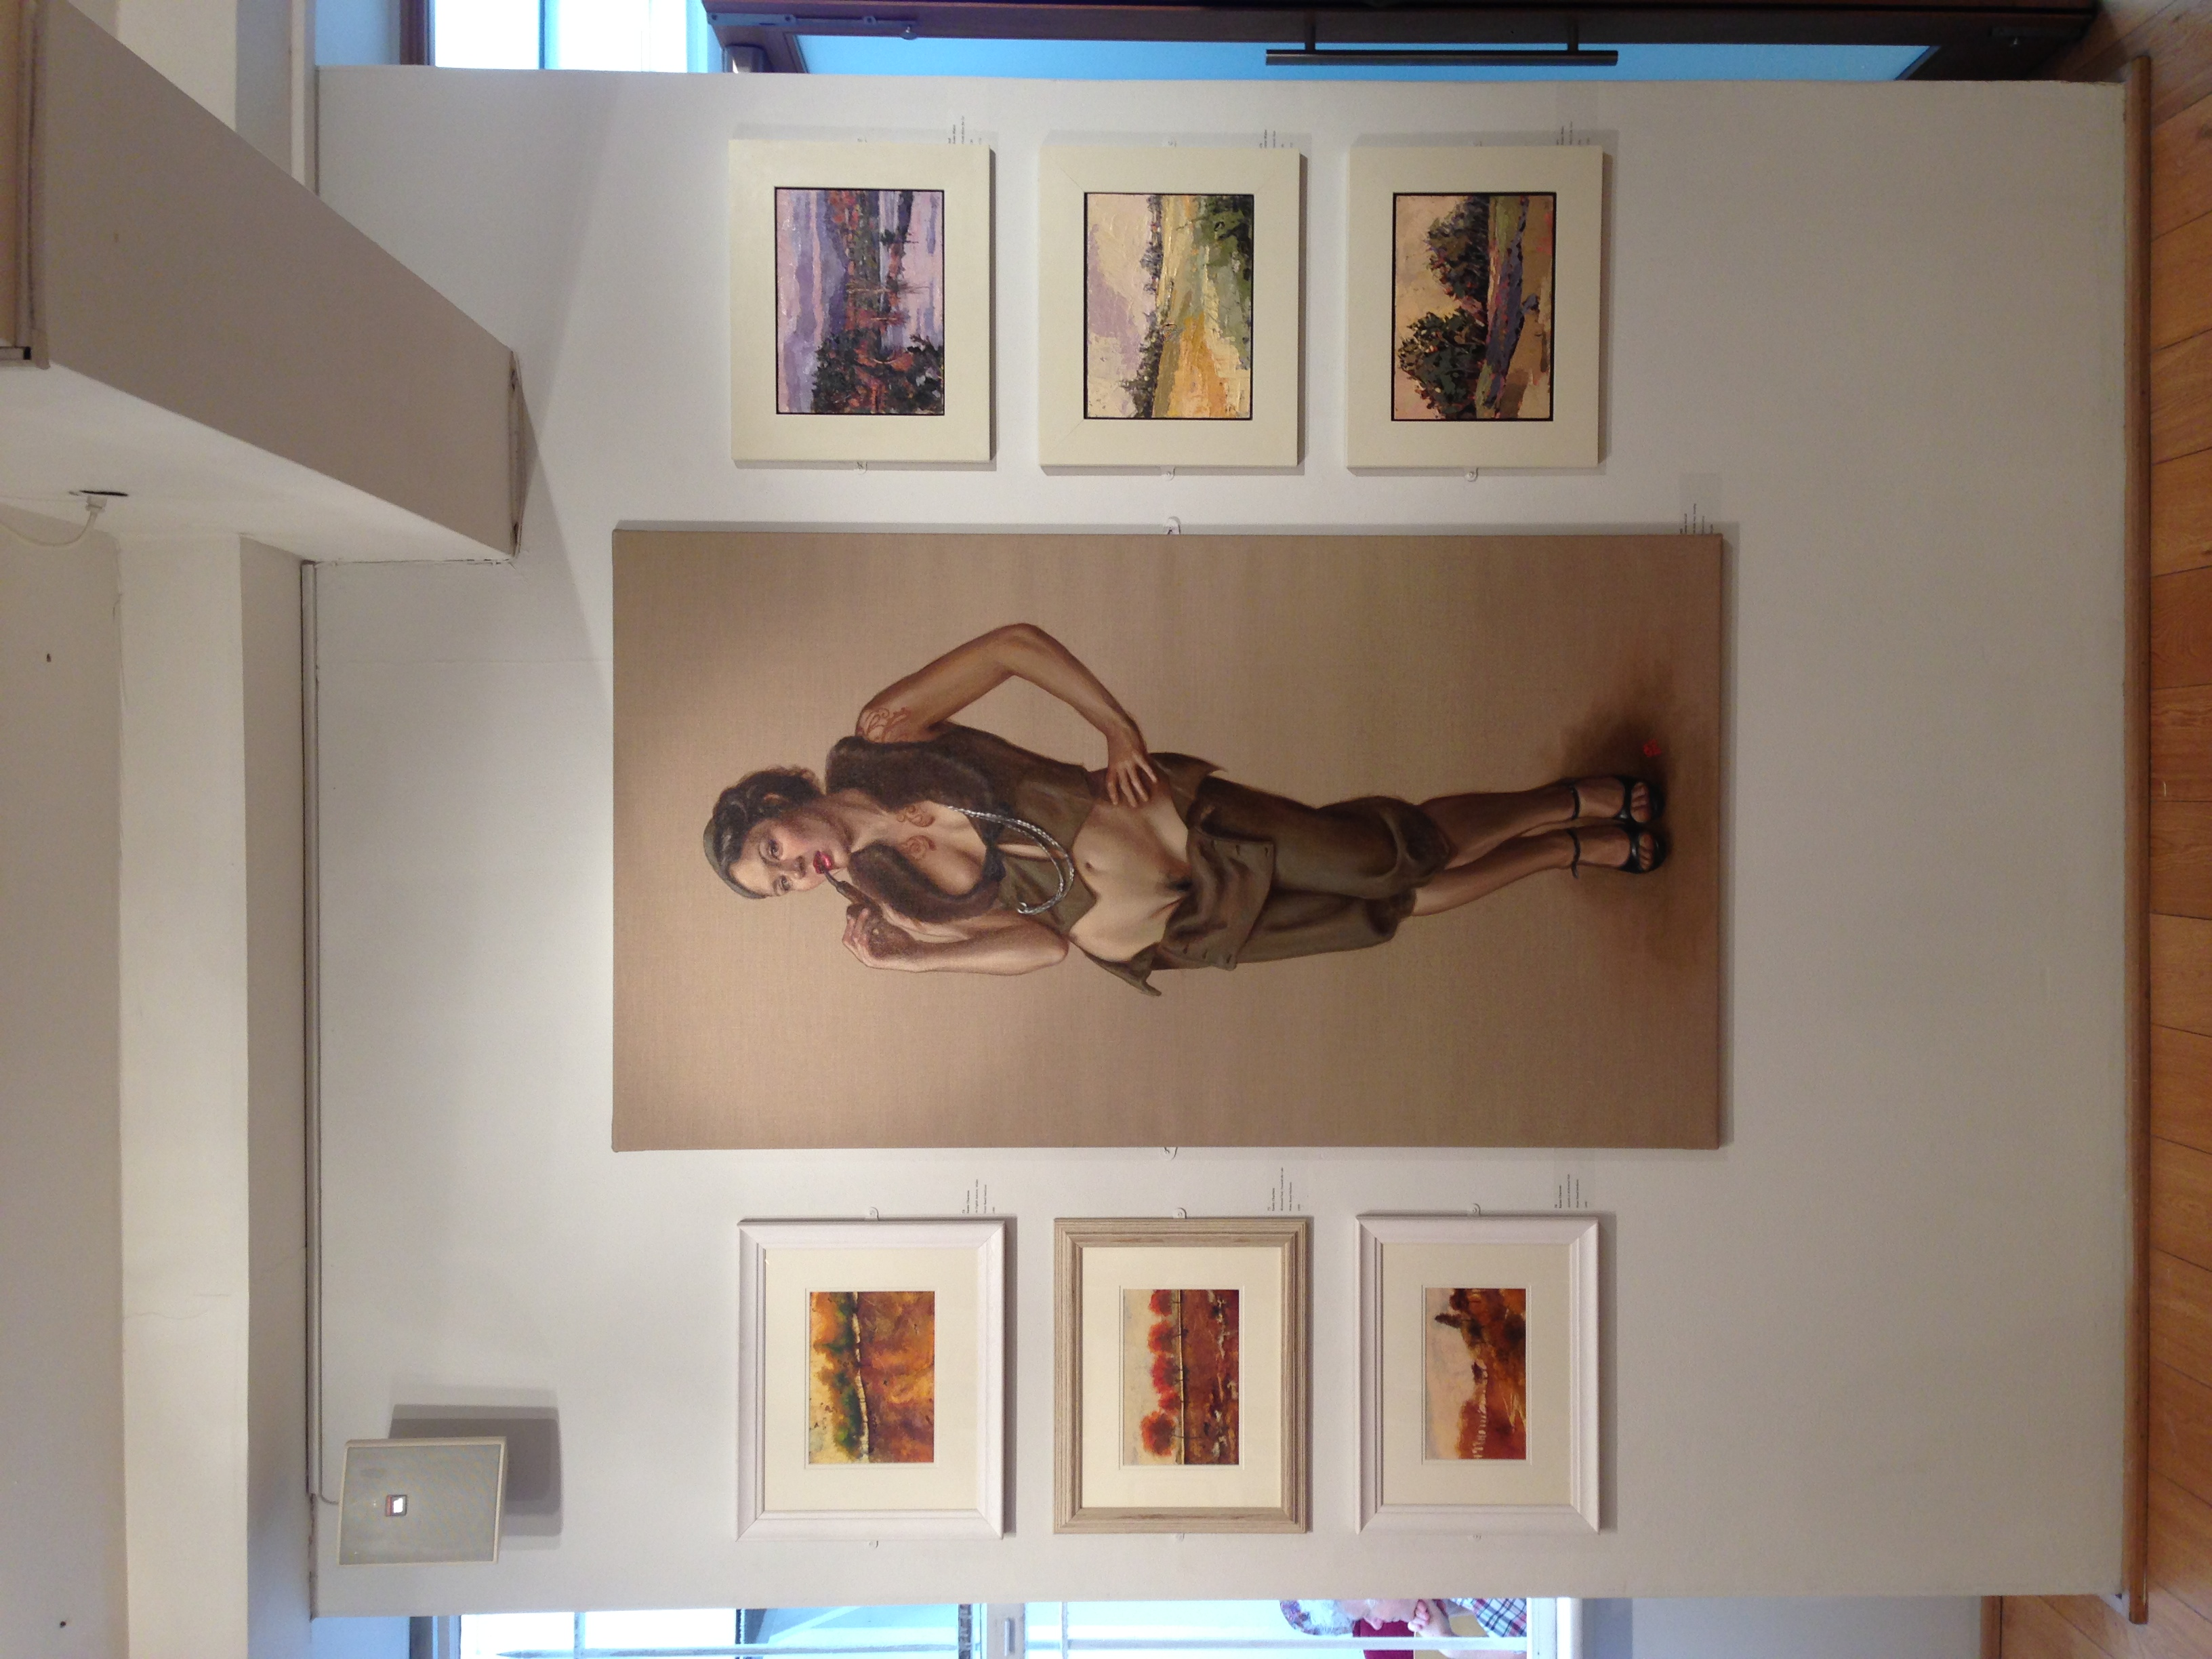 Portrait of Ms Ruby May, standing on show at the Mall Galleries, London until 5th July